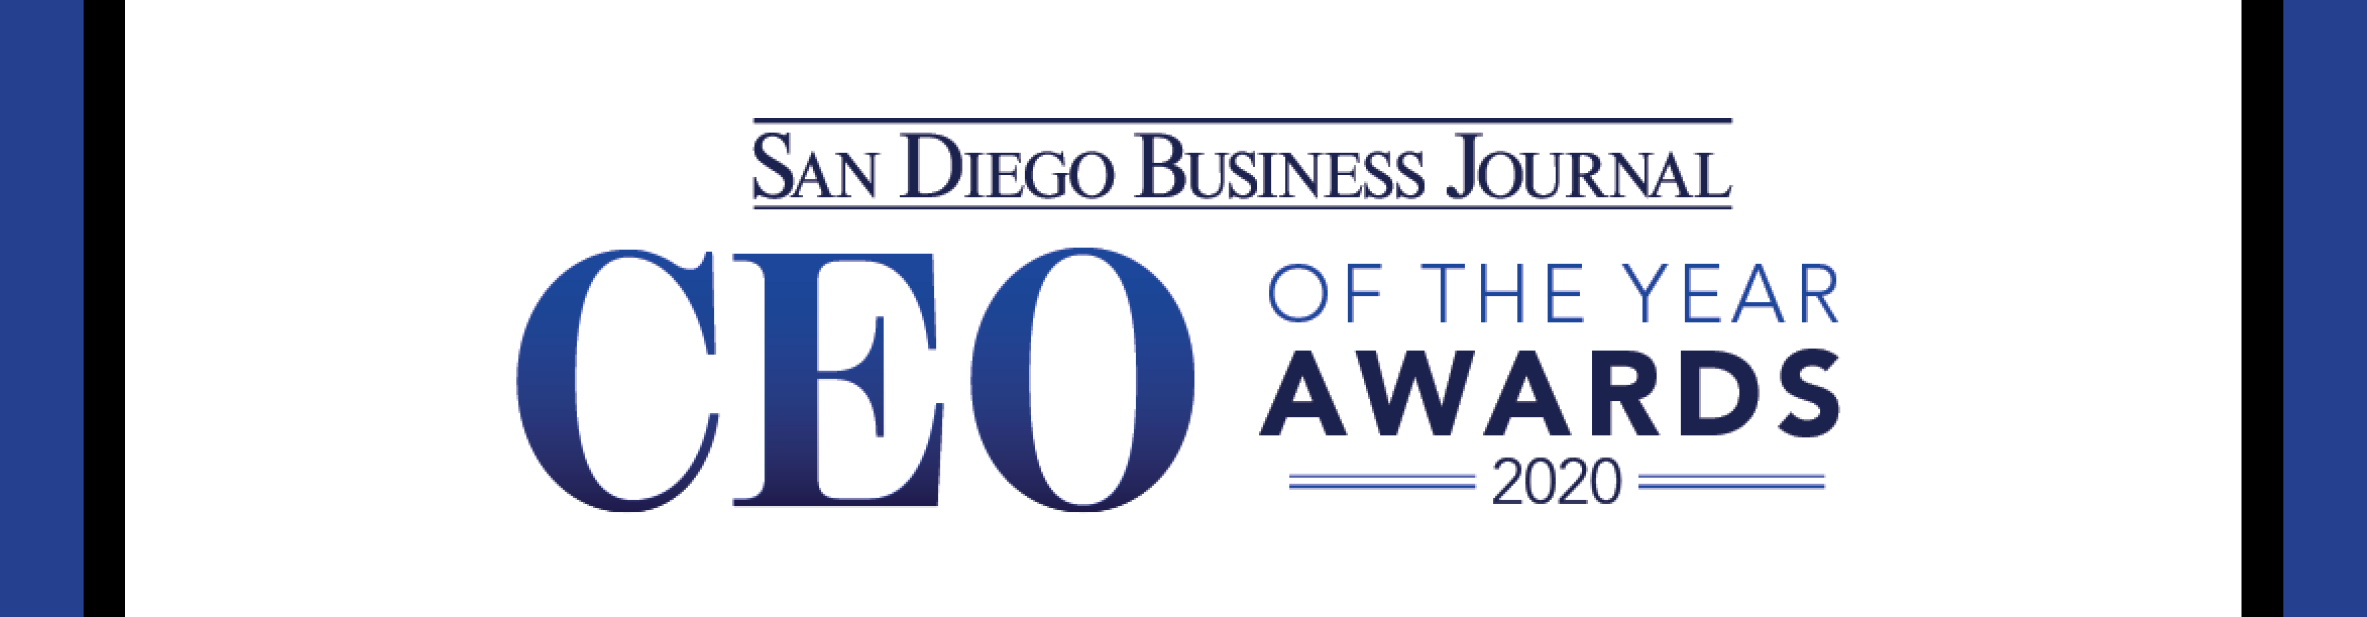 San Diego Business Journal CEO of the Year Awards